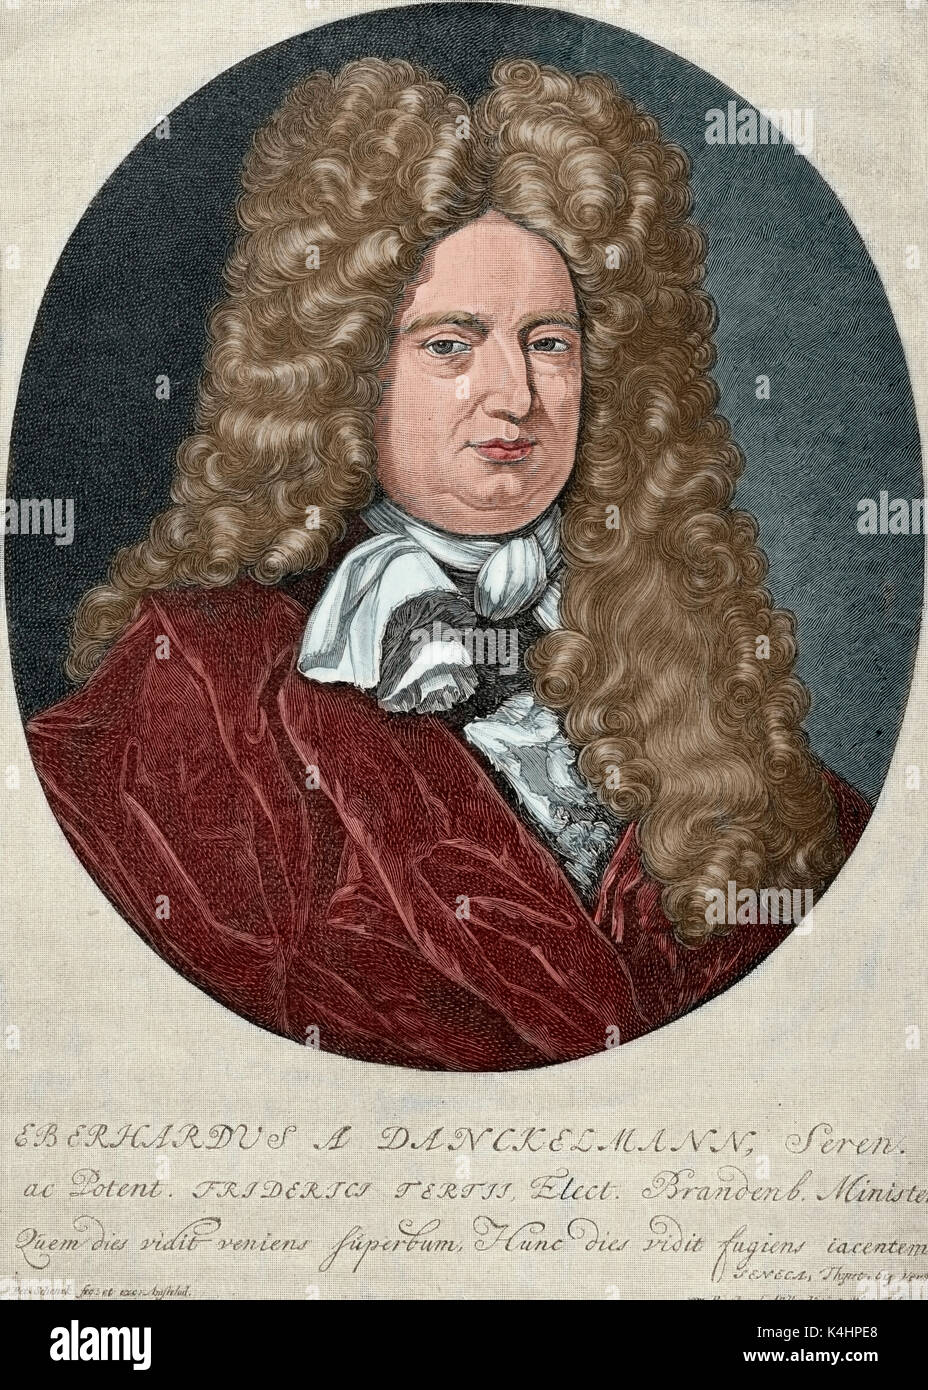 Eberhard von Danckelmann (1643-1722). German official who served as Prime Minister of Brandenburg-Prussia from 1692 to 1697. Portrait. Engraving by P. Schenck. 'Historia Universal', 1885. Colored. - Stock Image